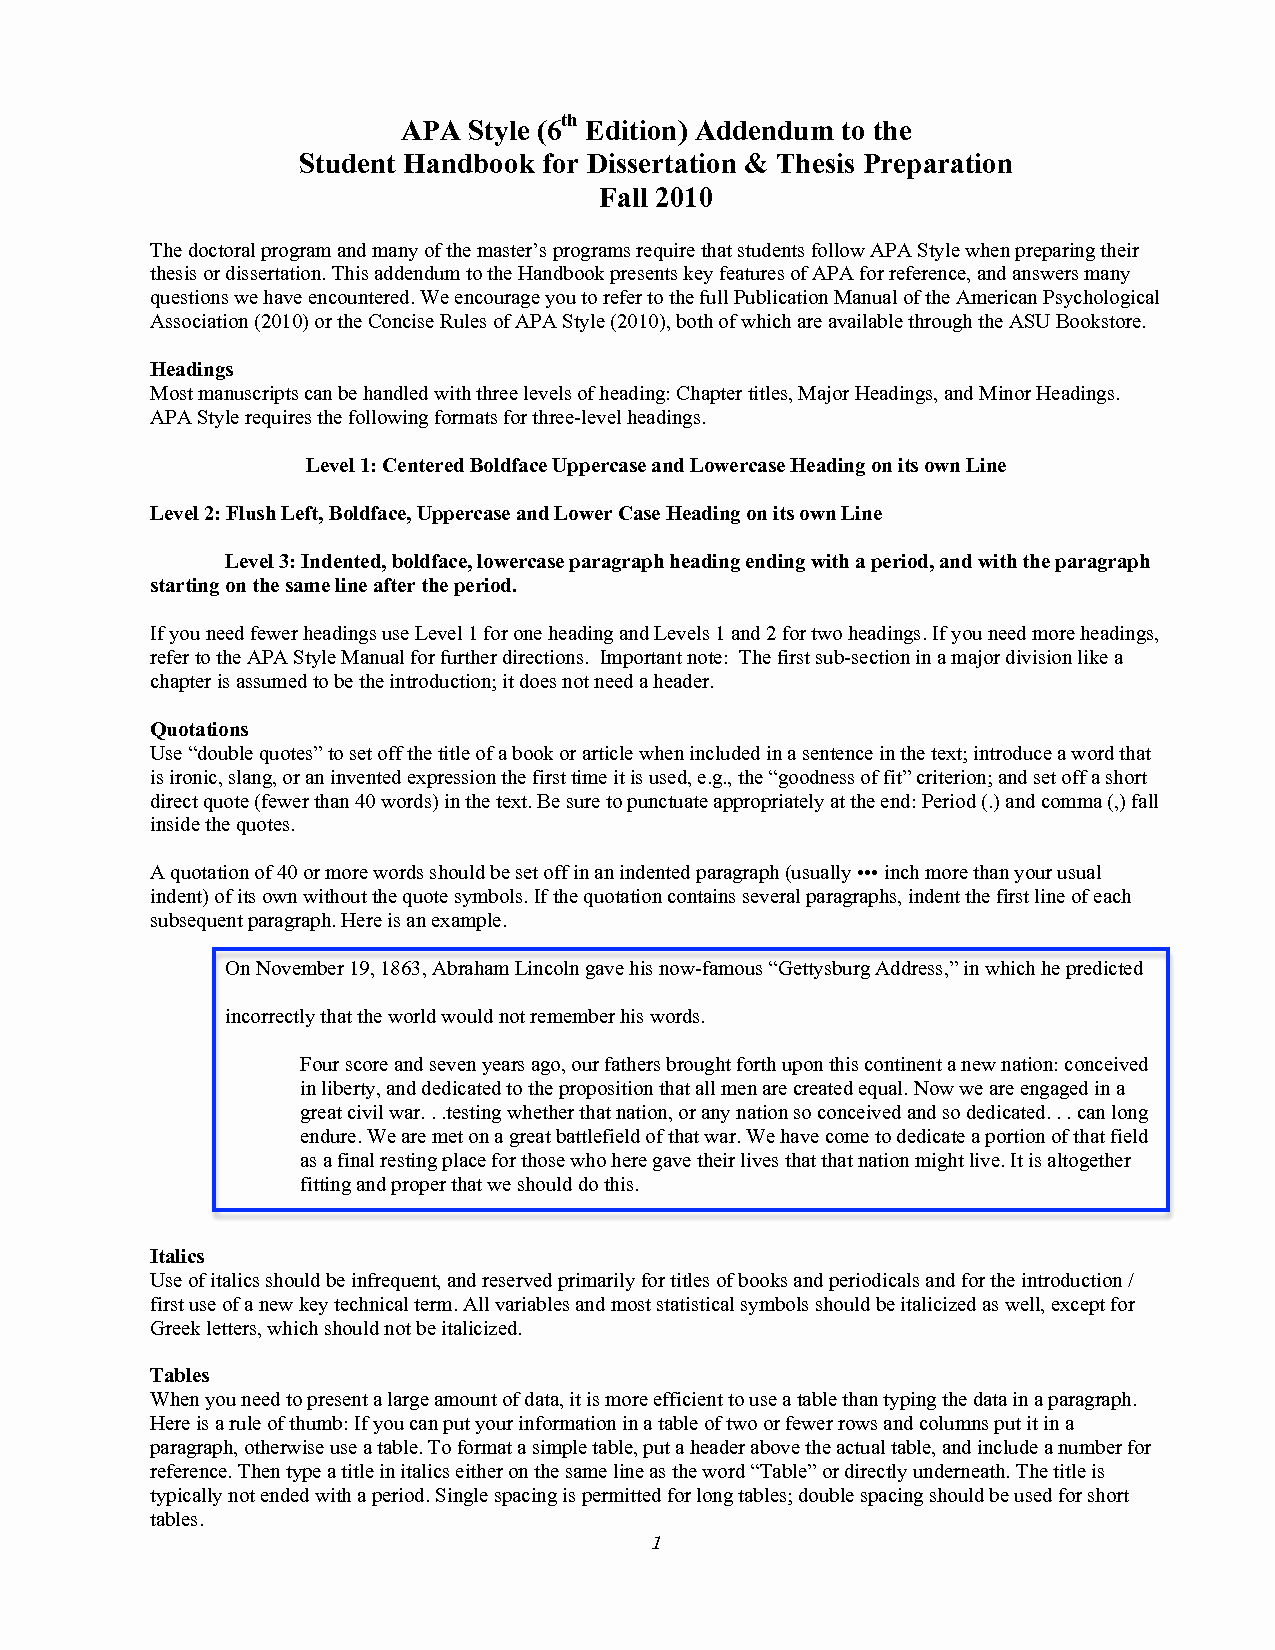 008 Apa Style Research Paper Template 6th Edition Format Best Of Sample Imposing Example Full